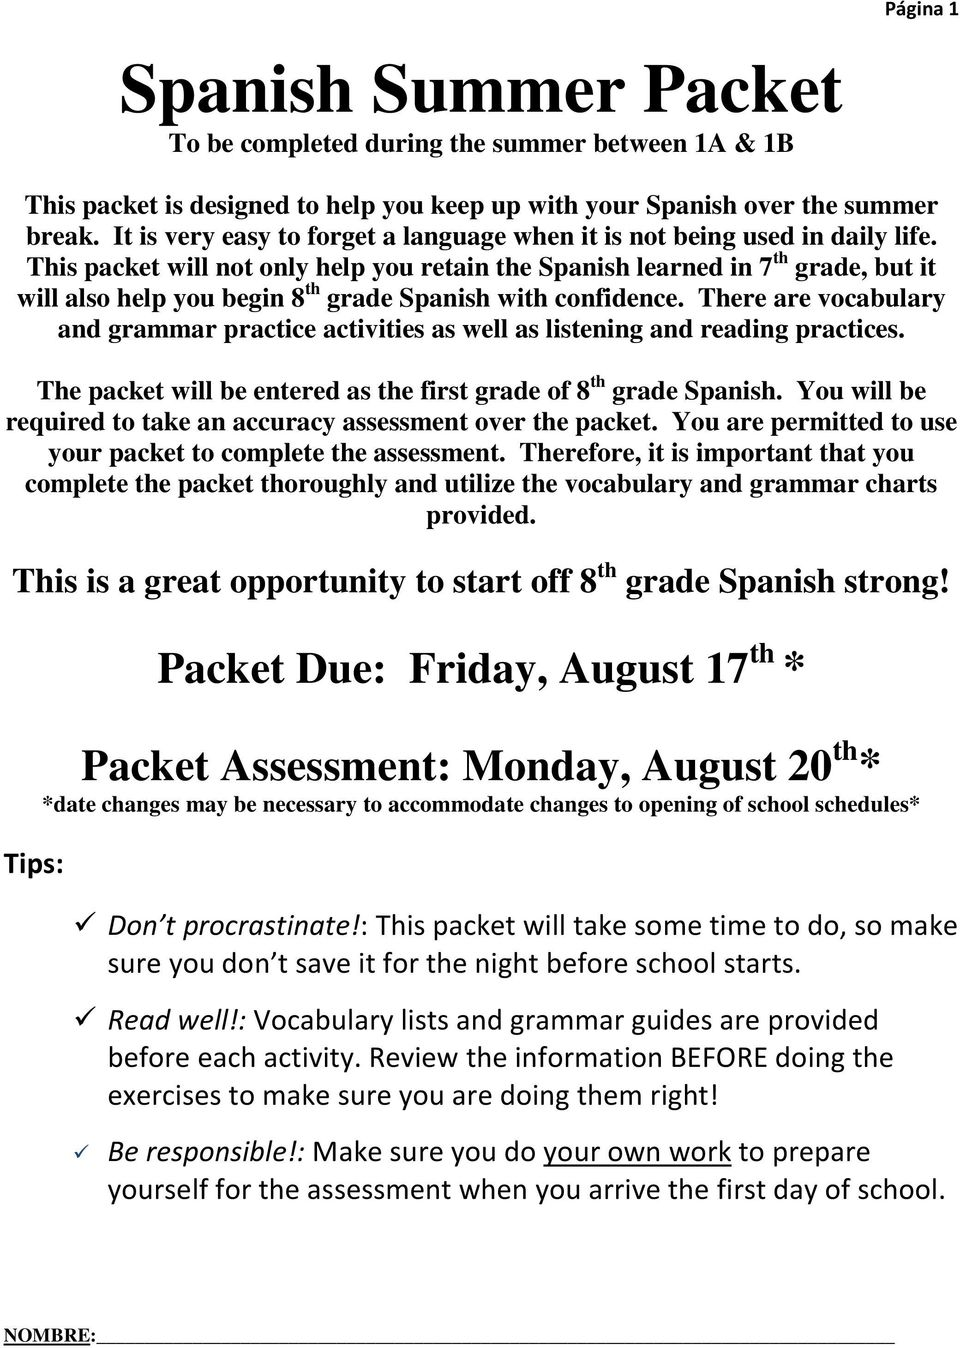 Spanish summer packet pdf this packet will not only help you retain the spanish learned in 7 th grade solutioingenieria Image collections